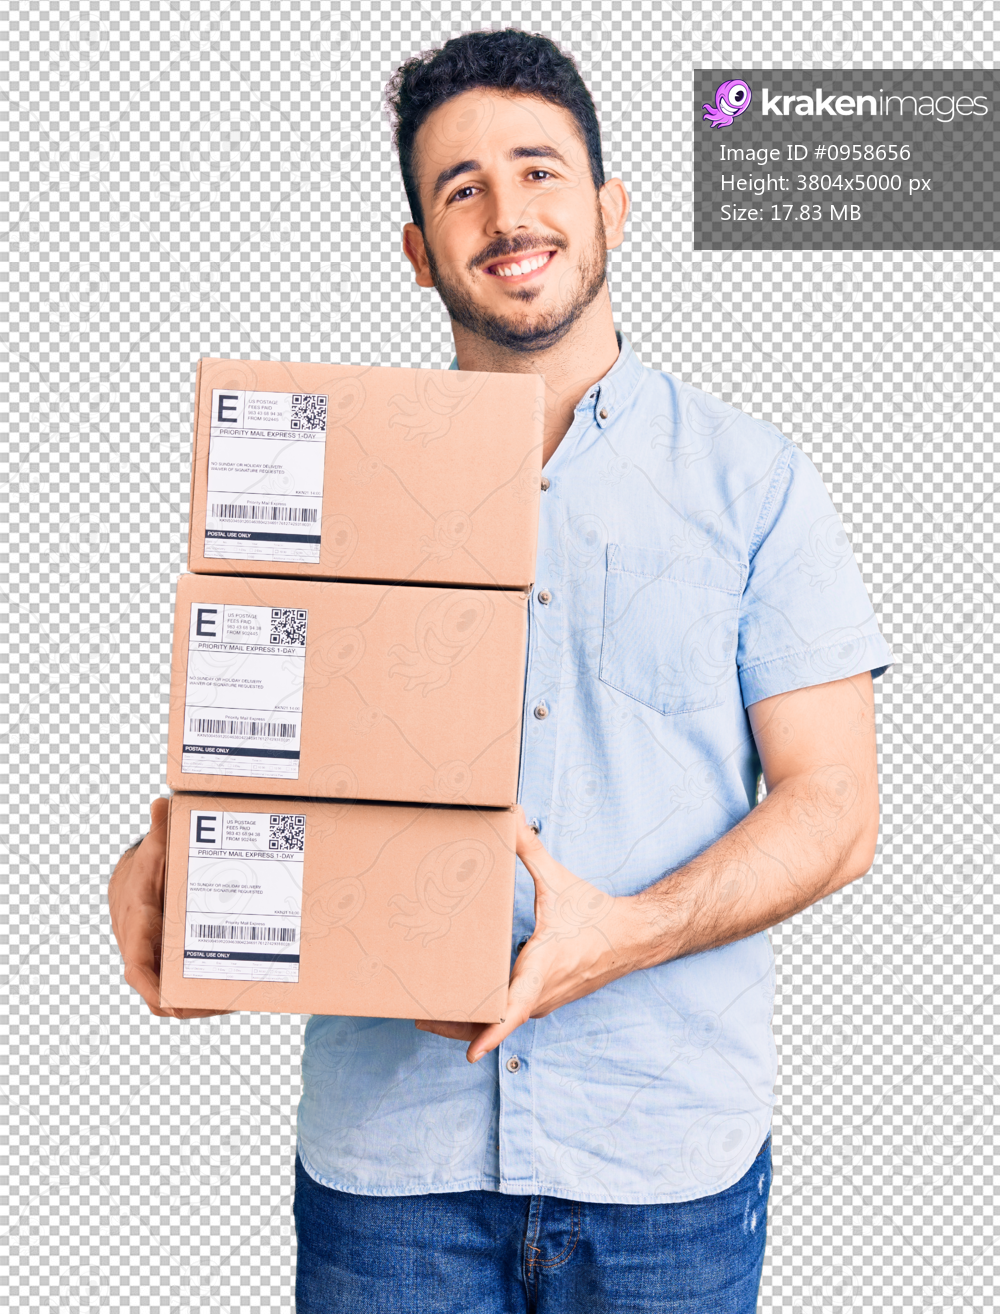 Young hispanic man holding delivery package looking positive and happy standing and smiling with a confident smile showing teeth